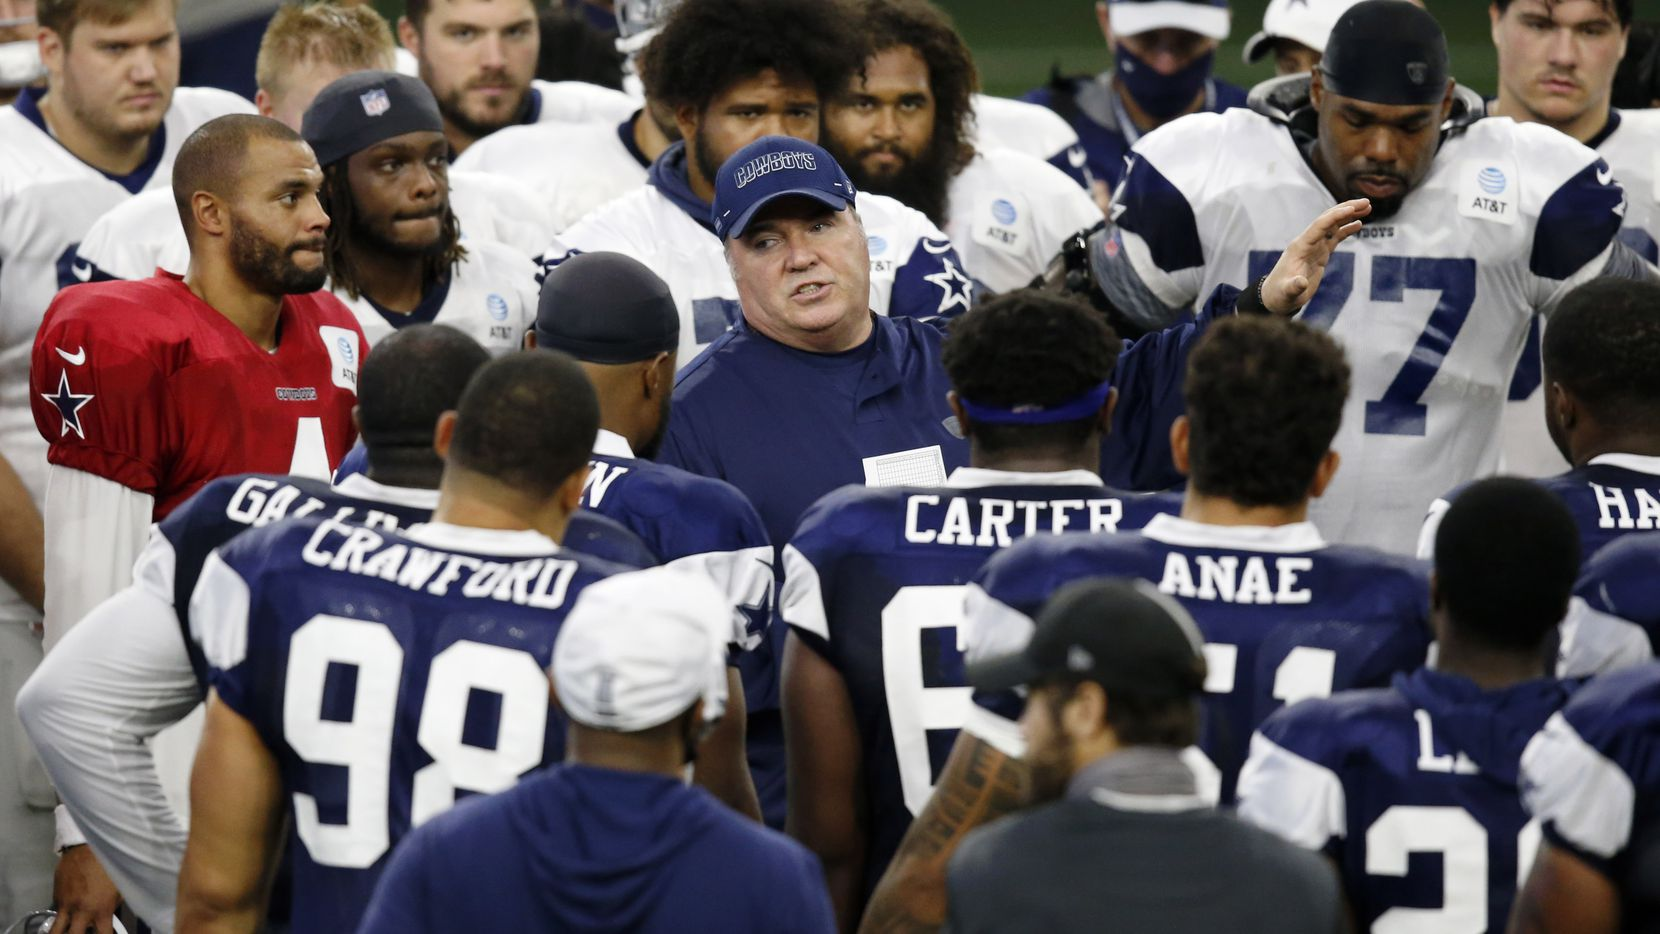 Dallas Cowboys head coach Mike McCarthy talks to the team after practice during training camp inside the Ford Center at the Dallas Cowboys headquarters at The Star in Frisco, Texas on Tuesday, August 18, 2020.